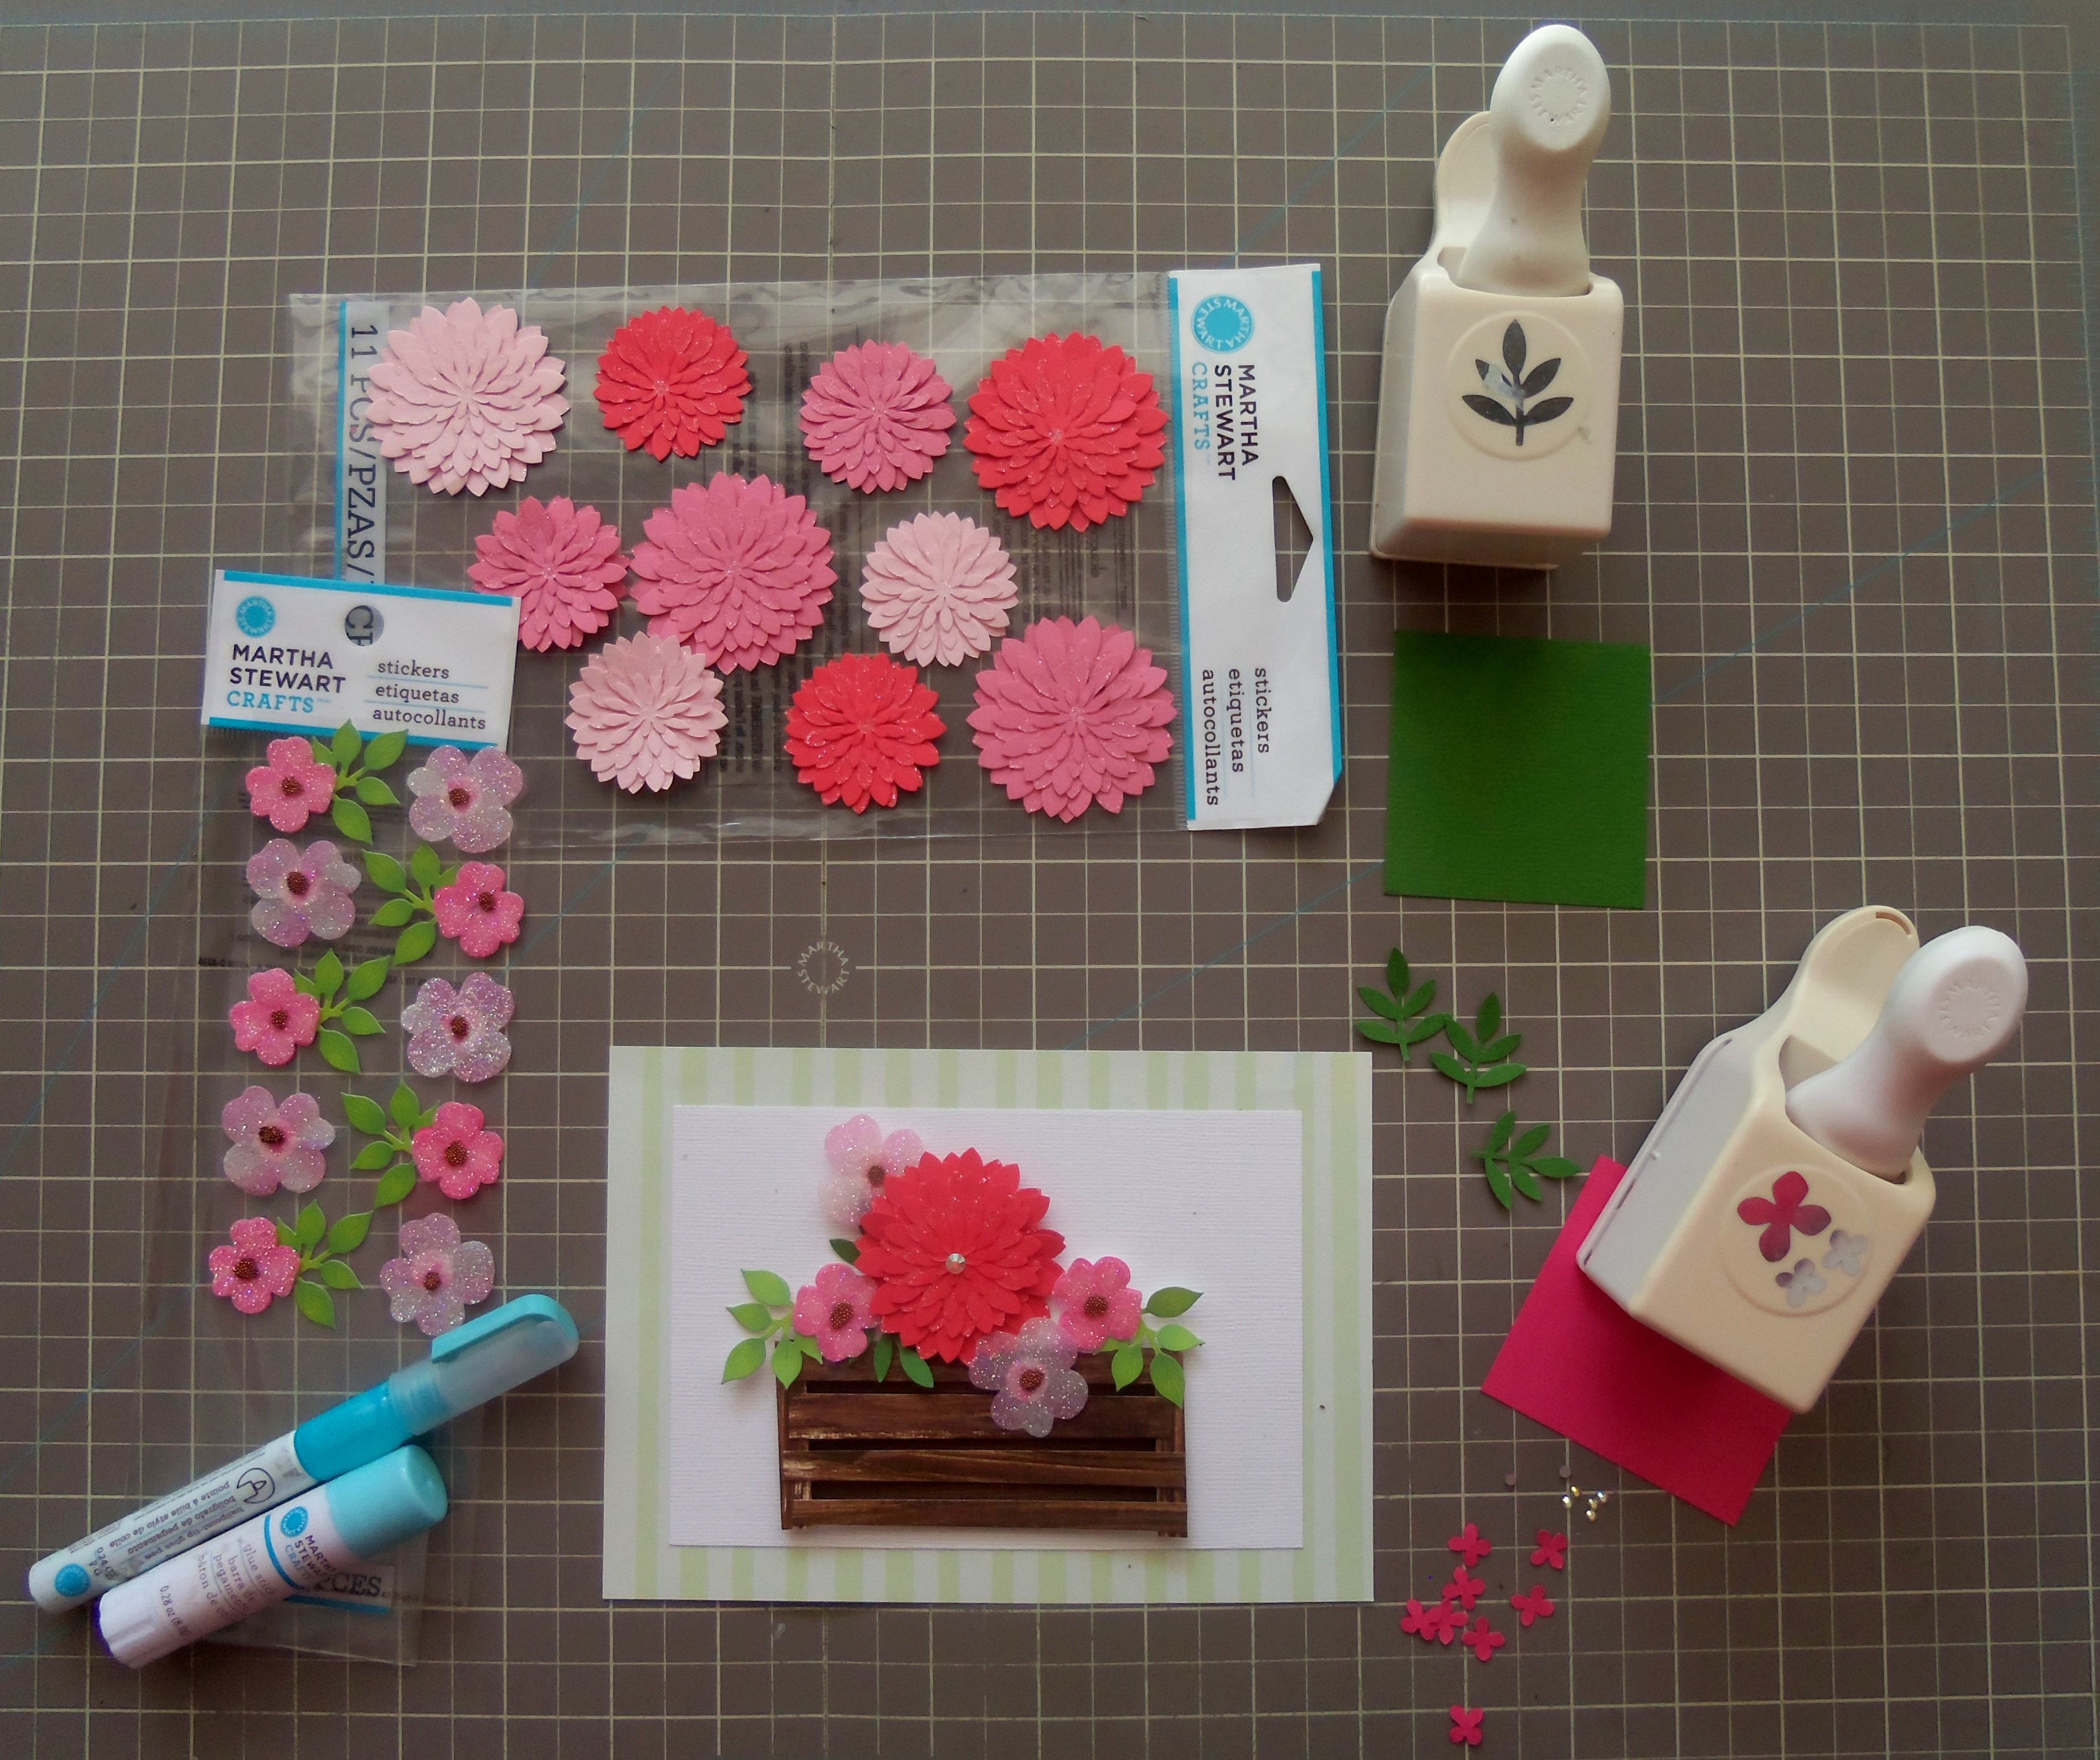 Martha stewart paper flower stickers flowers healthy fl stickerartha stewart paper punches hydrangea and leaf frond 9 easy spring in a crate card tutorial with martha stewart crafts mightylinksfo